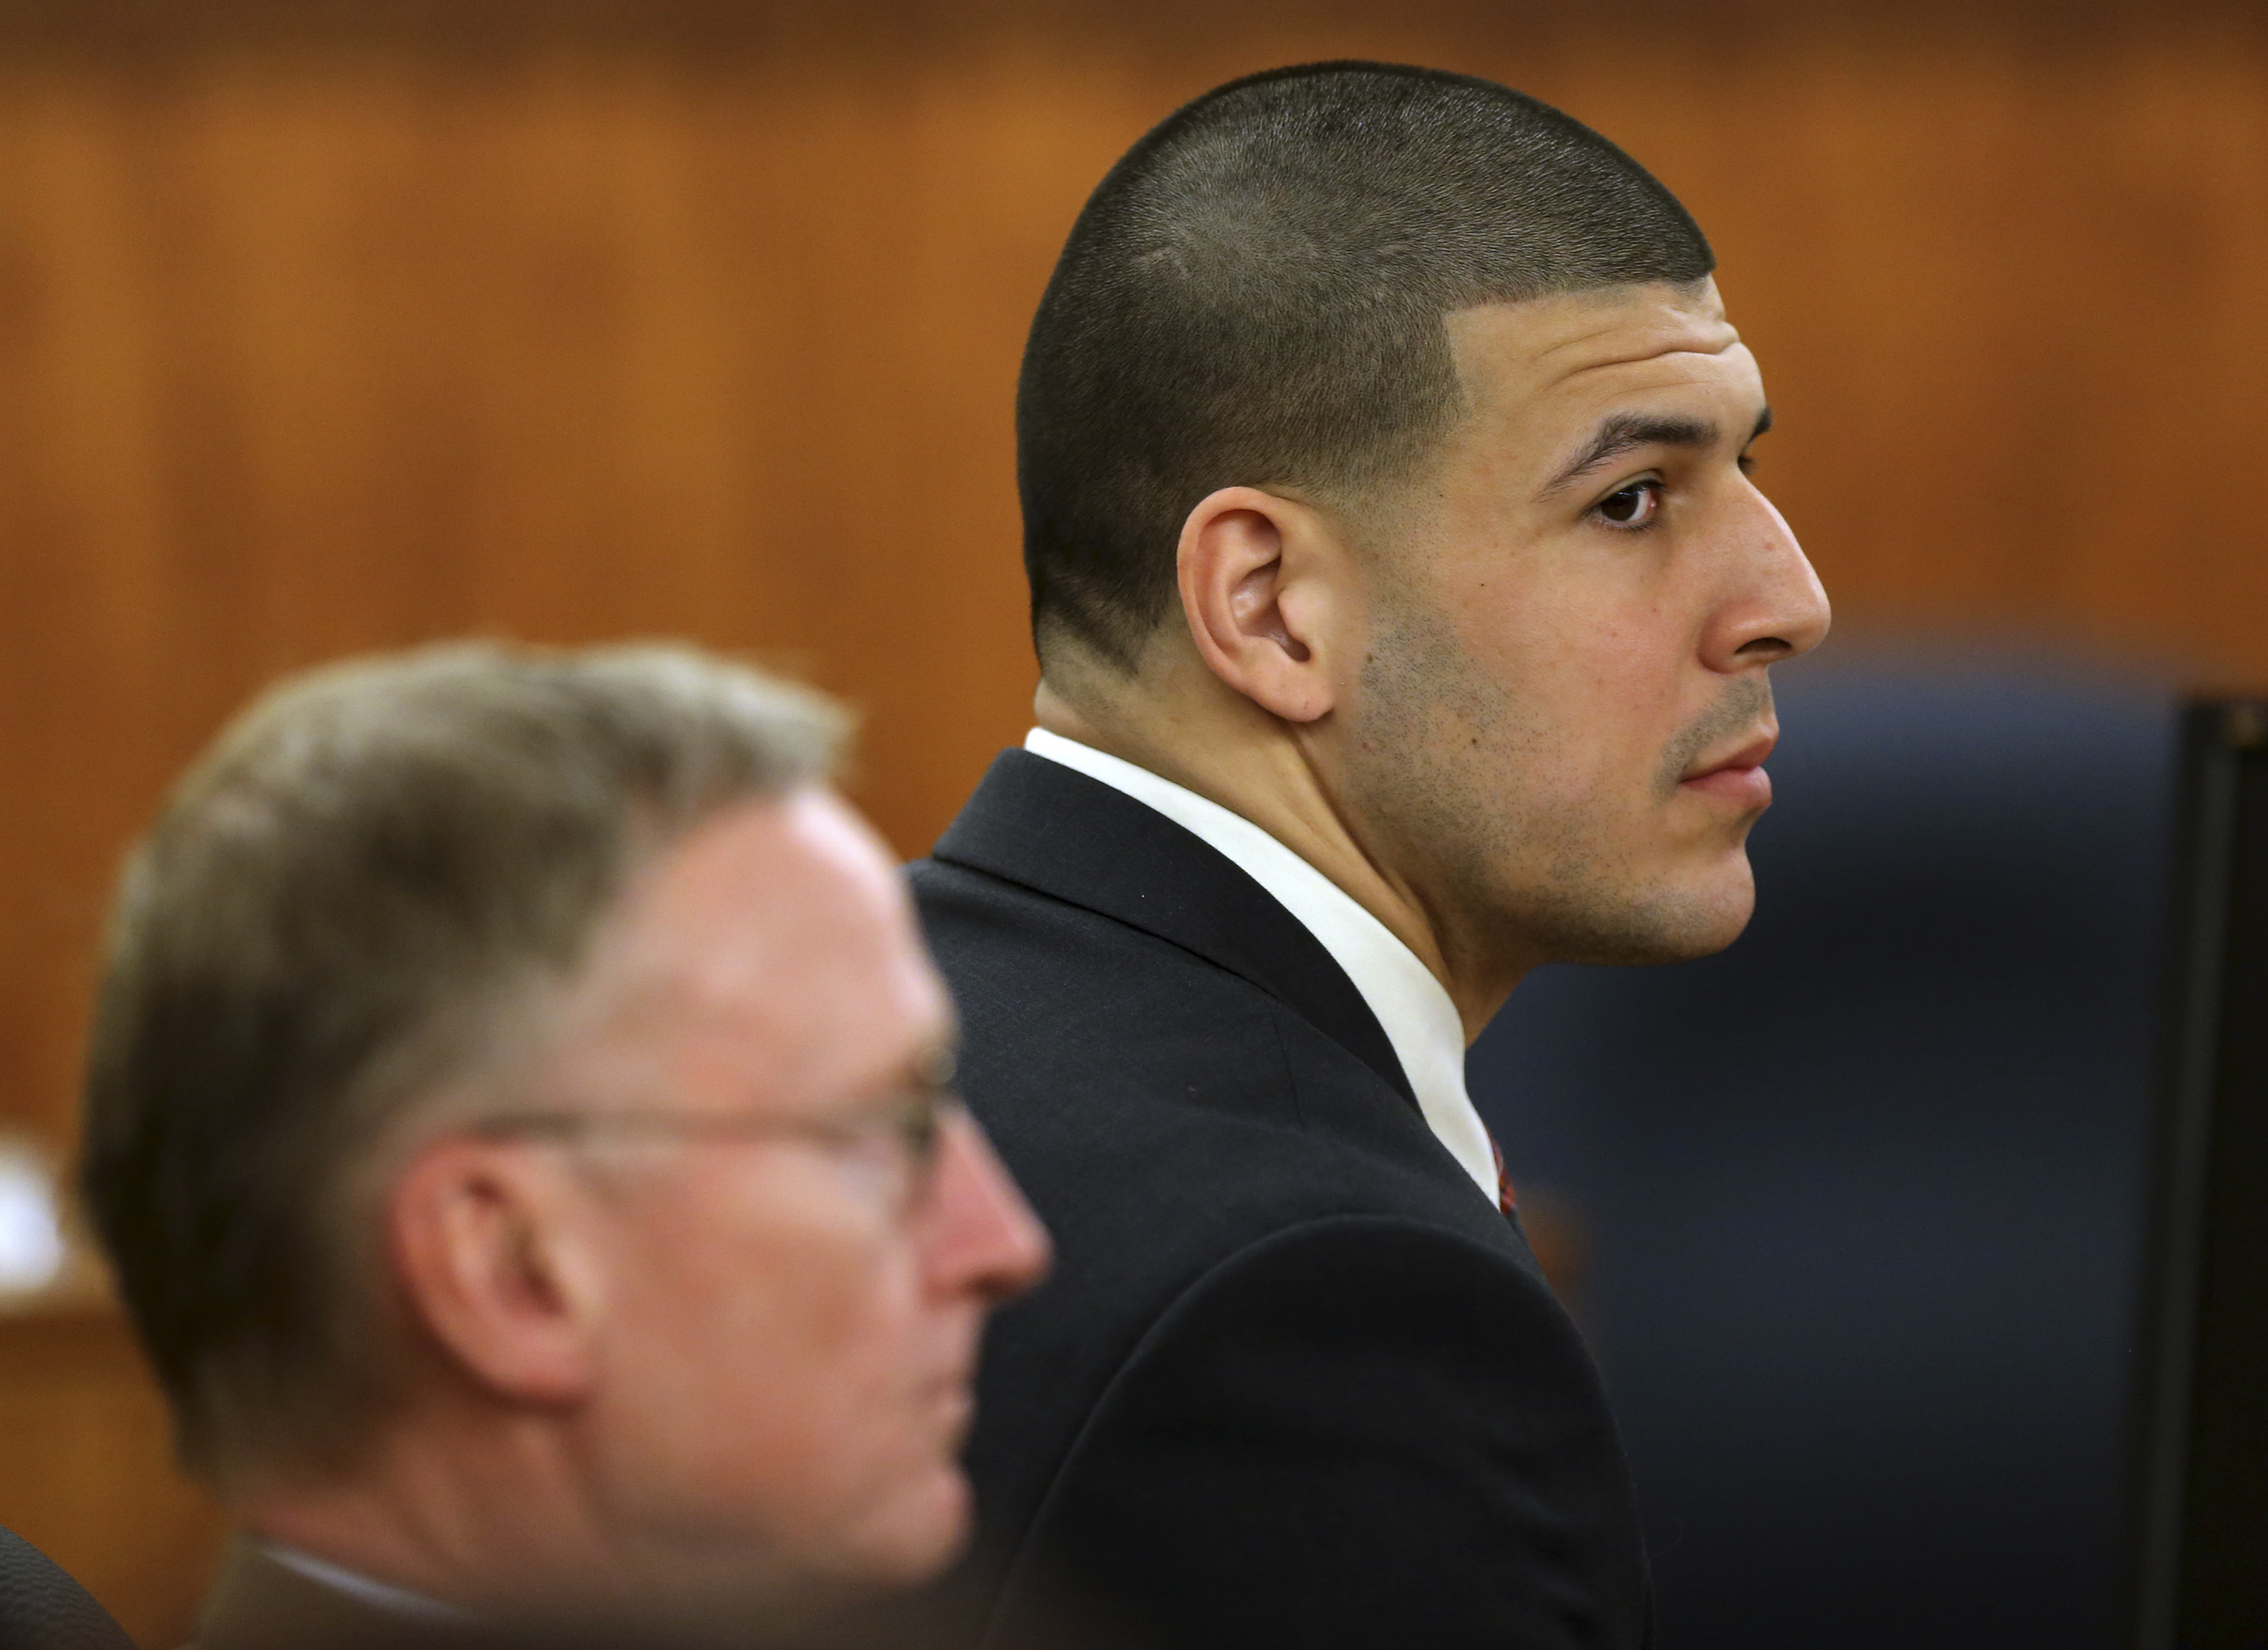 07a0f773ddf Report: Knife found in prison cell of Aaron Hernandez, former NFL ...